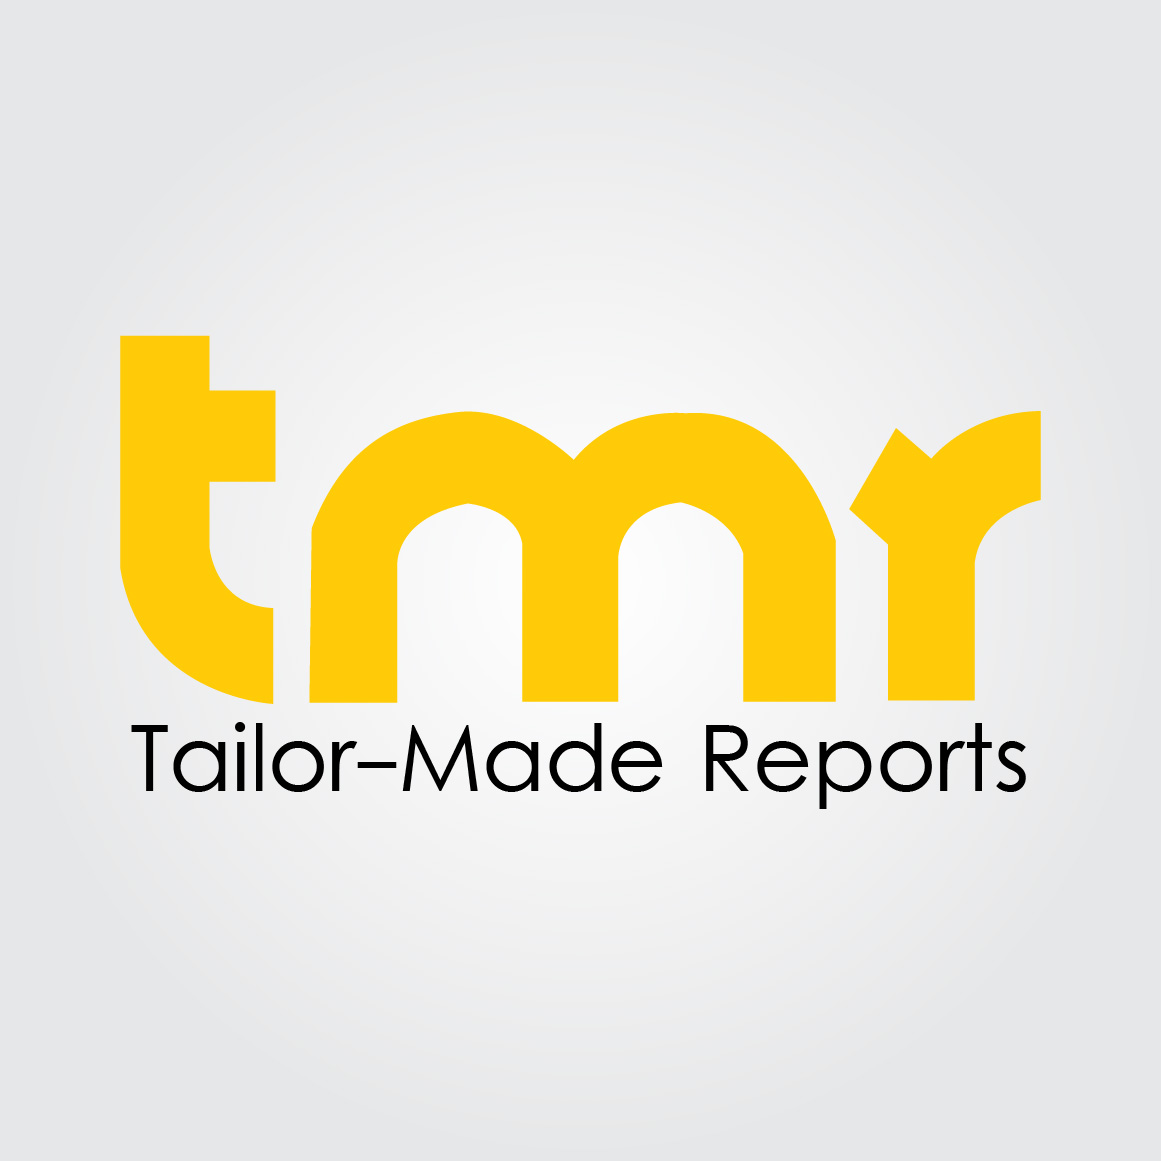 Facade Market Growth and Restrain Factors Analysis Report to 2025